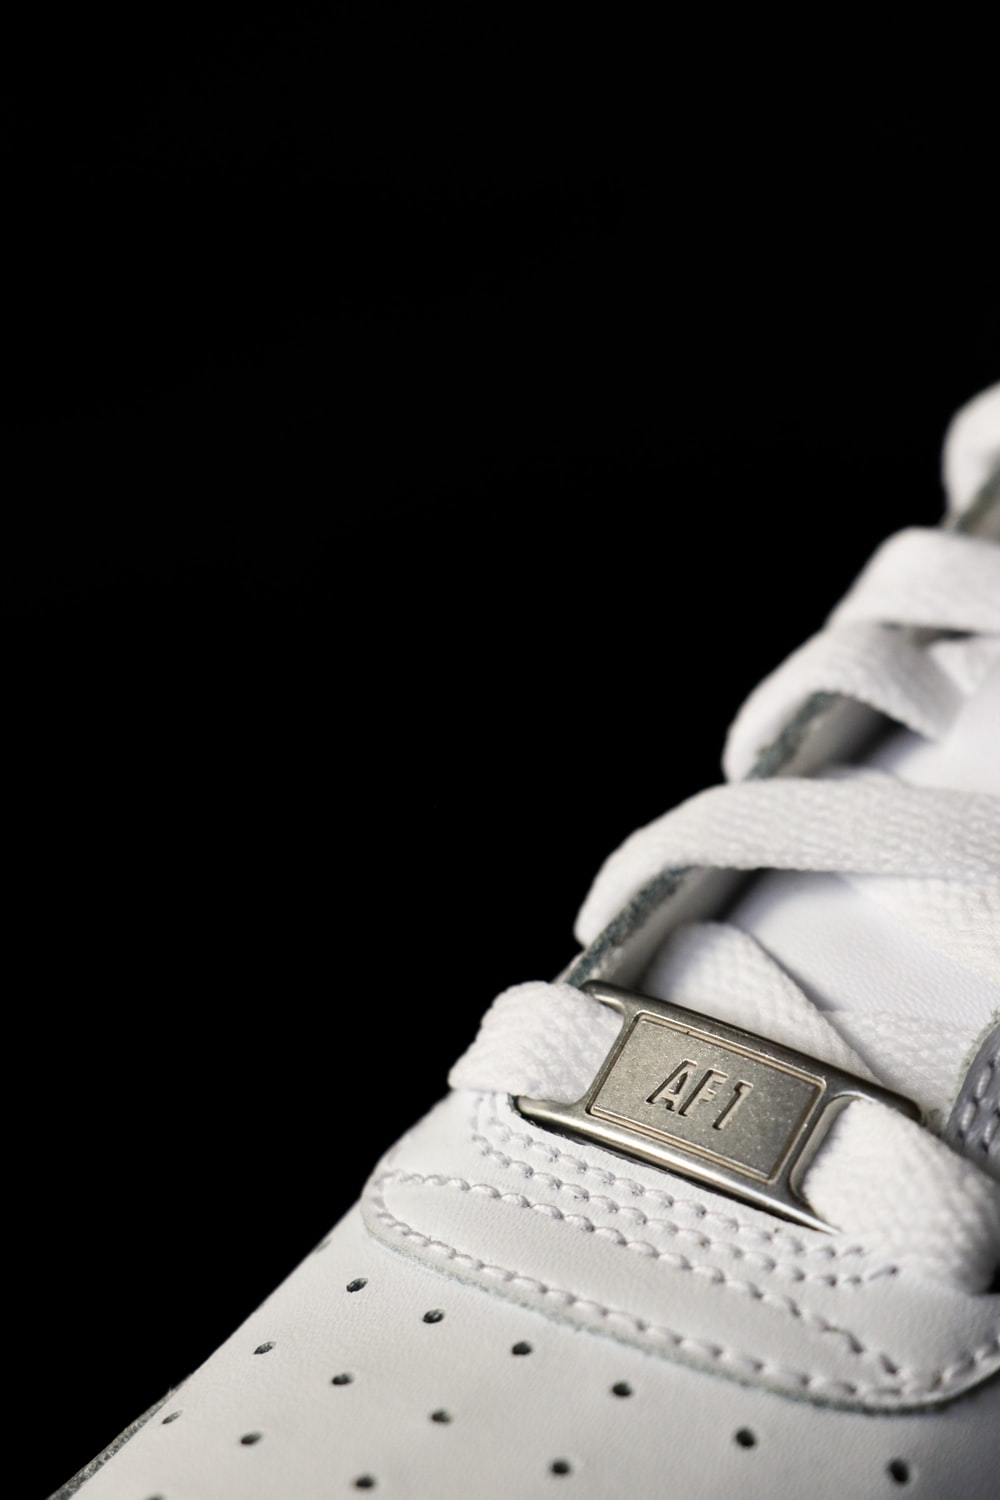 close-up photo of white low-top sneakers